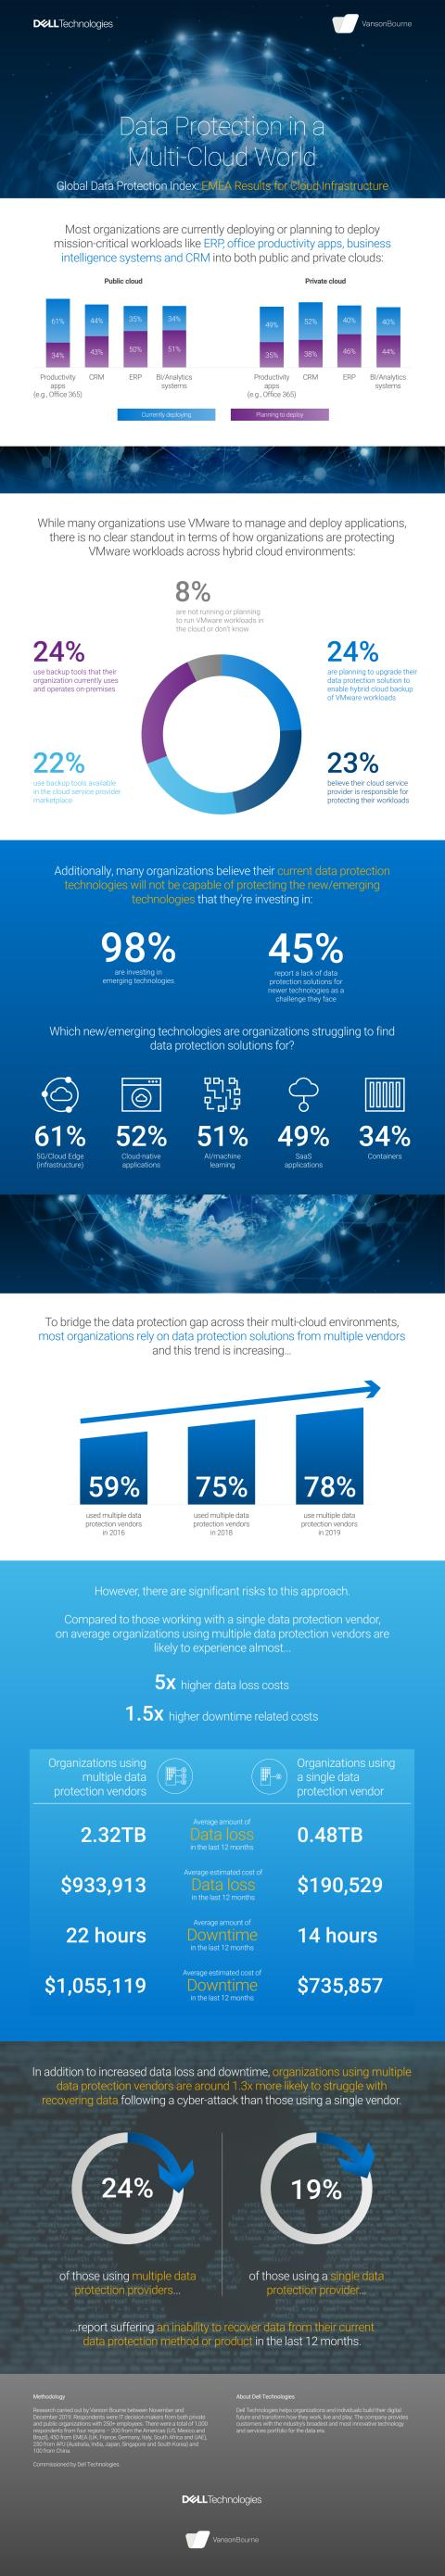 Global Data Protection Index 2020 Snapshot